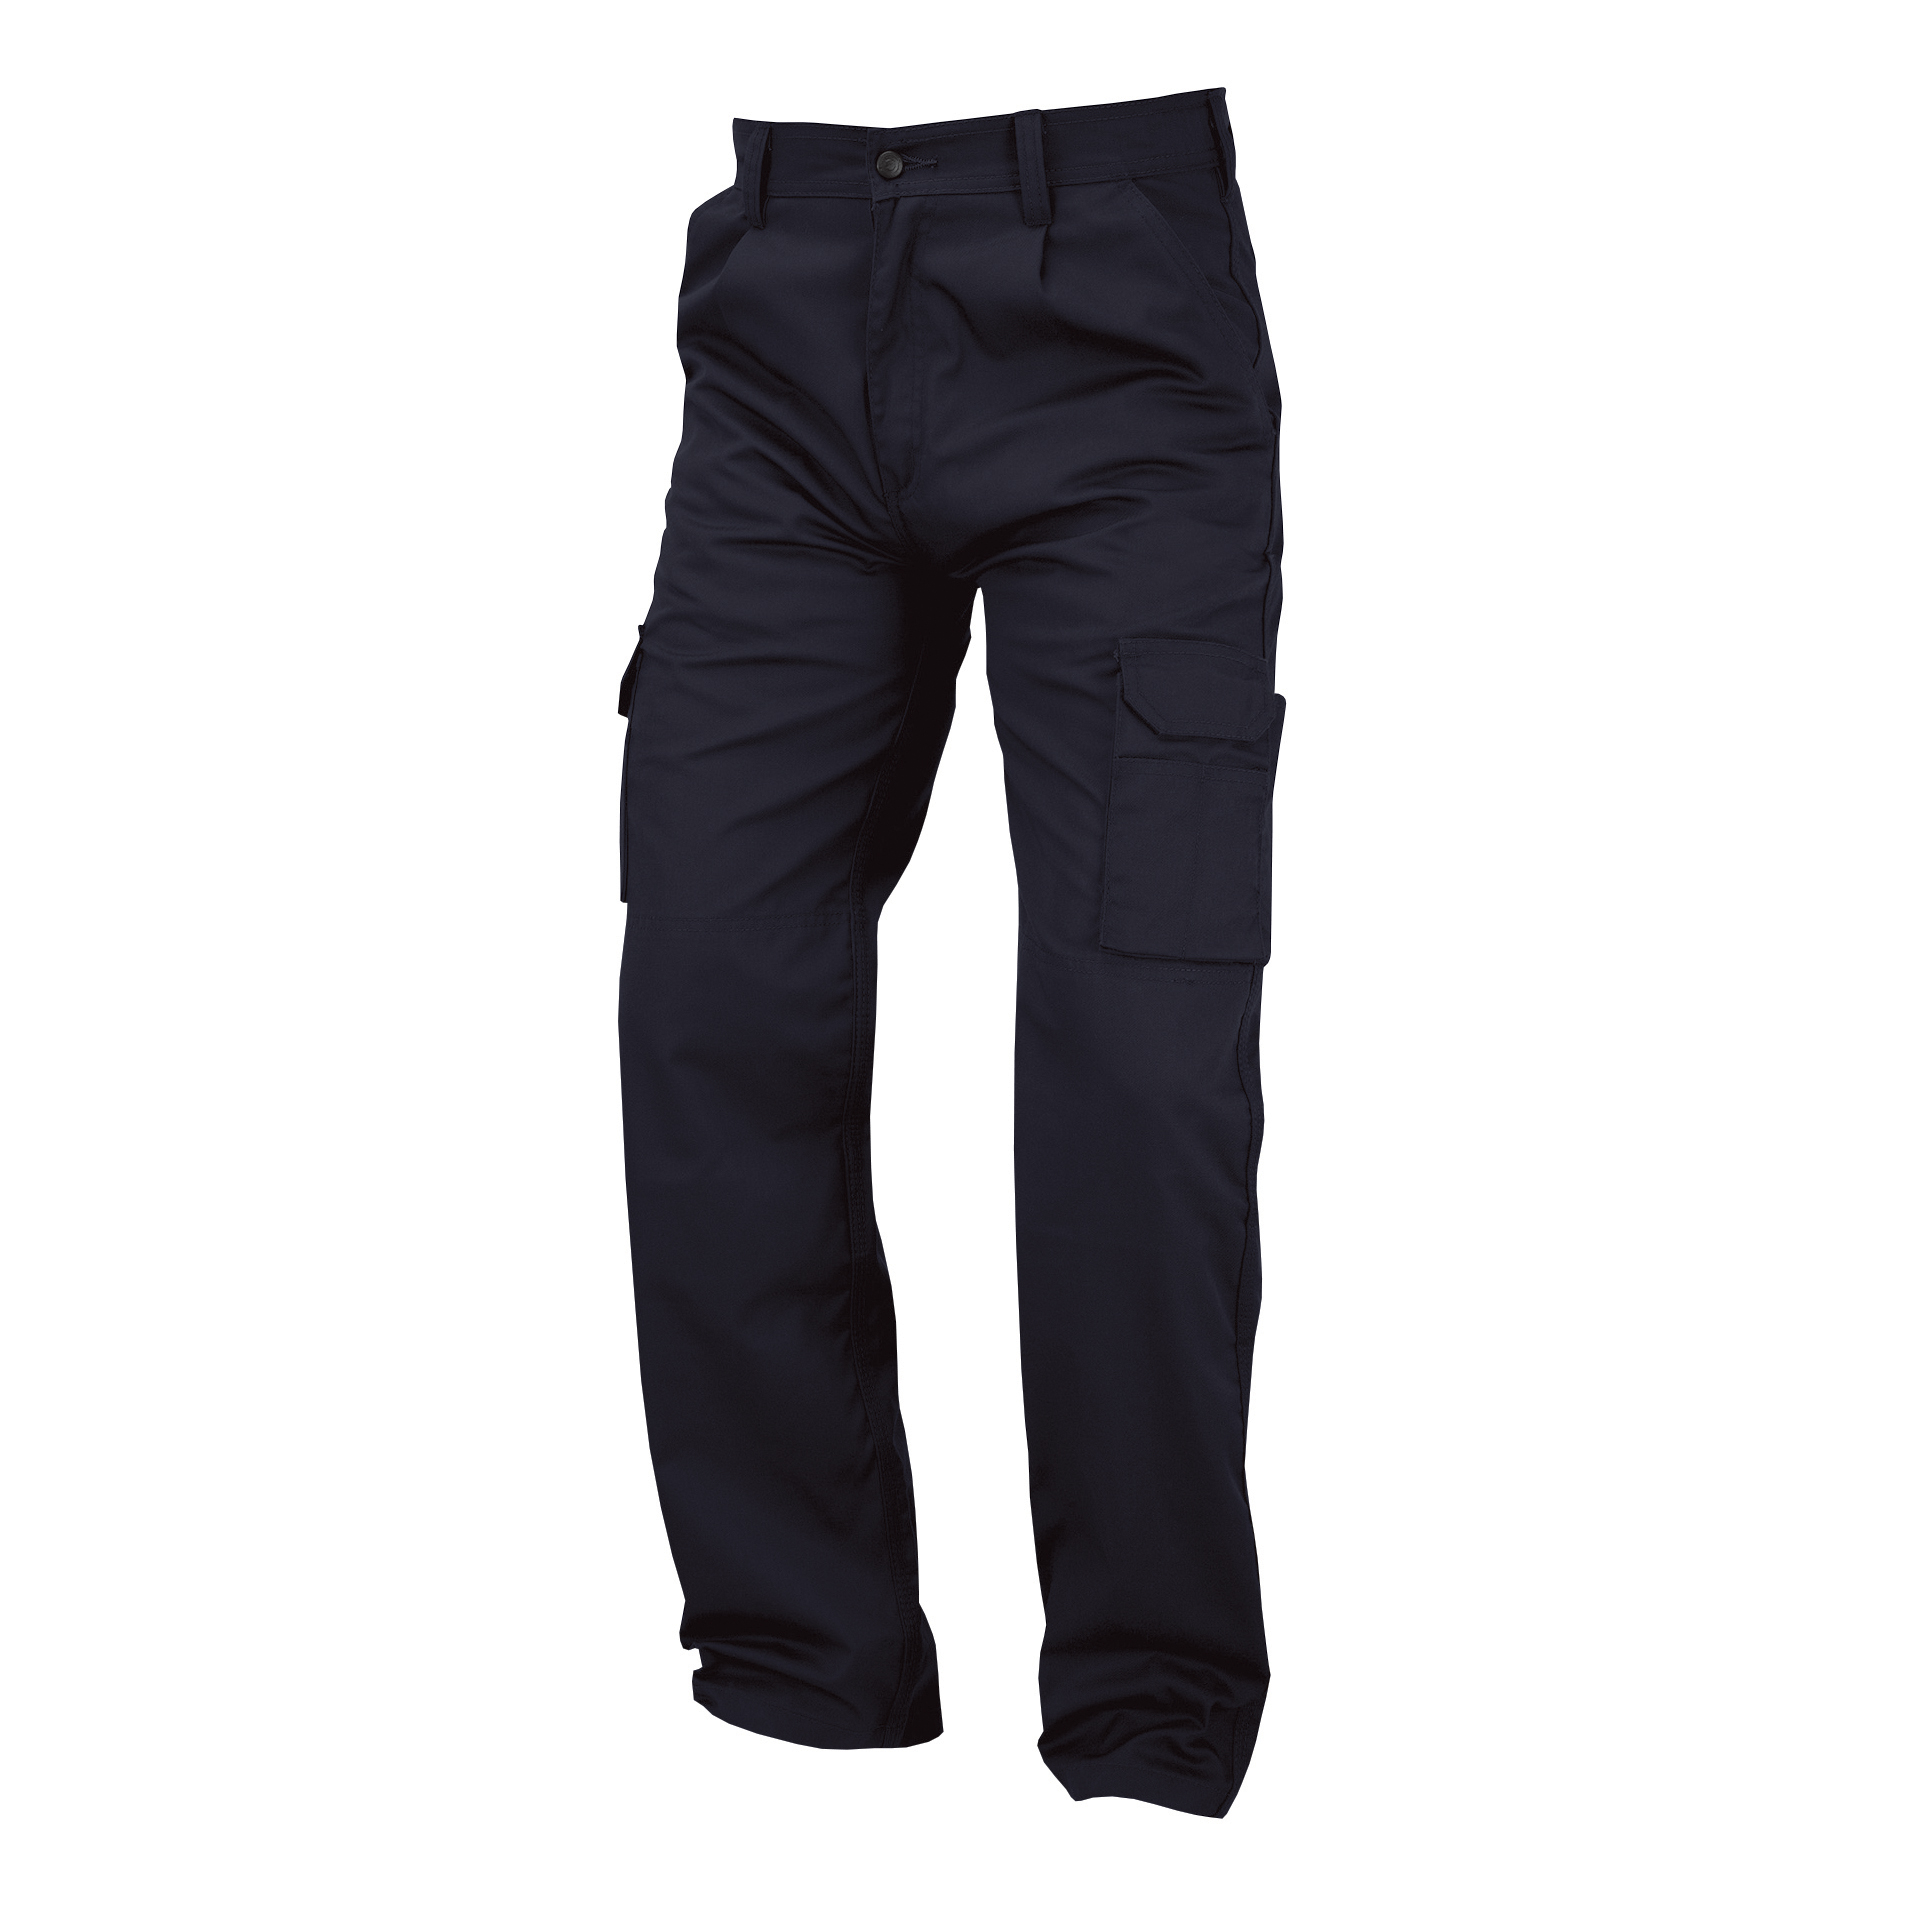 Combat / Cargo Combat Trousers Polycotton with Pockets 32in Regular Navy Blue Ref PCTHWN32 *1-3 Days Lead Time*